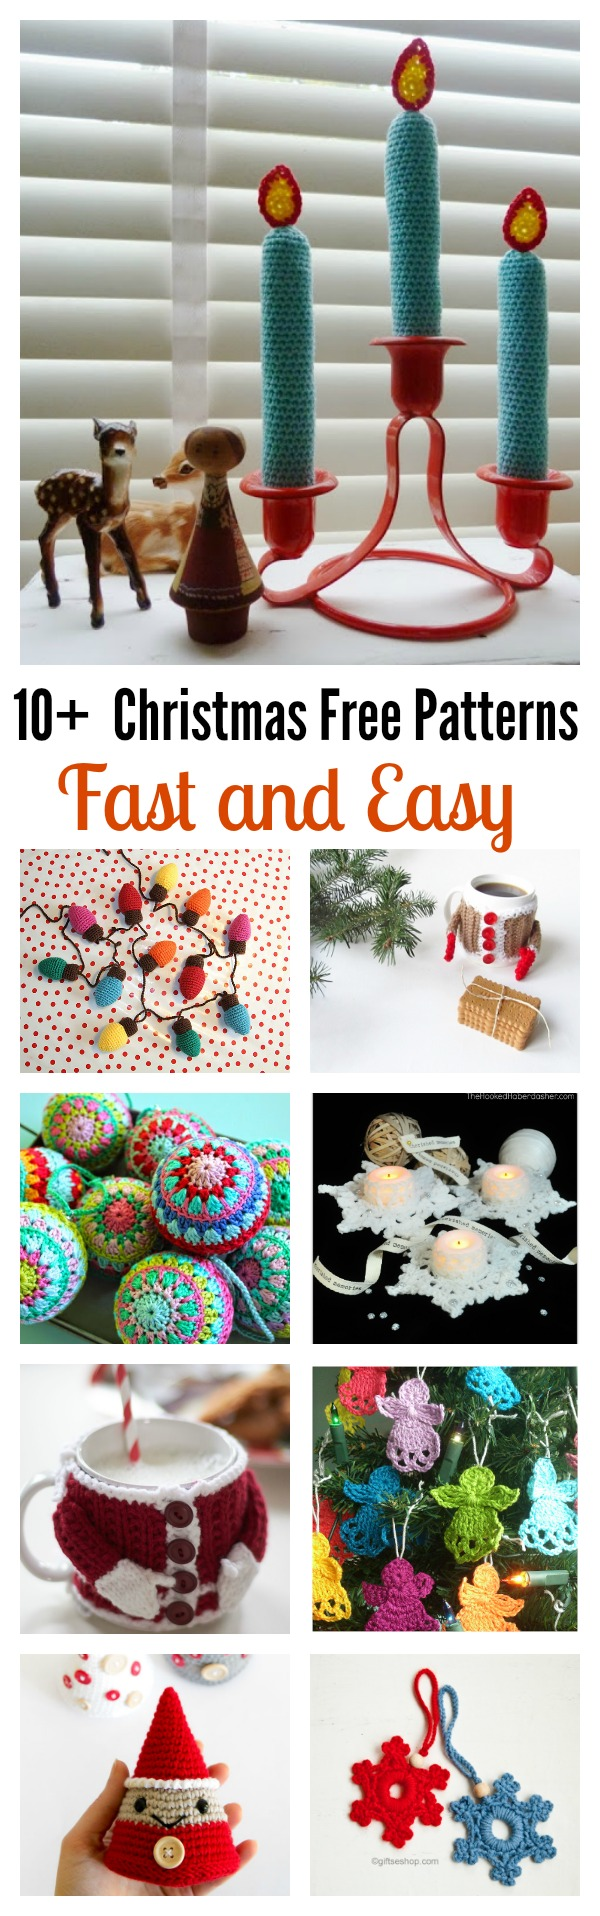 10+ Fast and Easy Christmas Free Patterns for Last Minutes